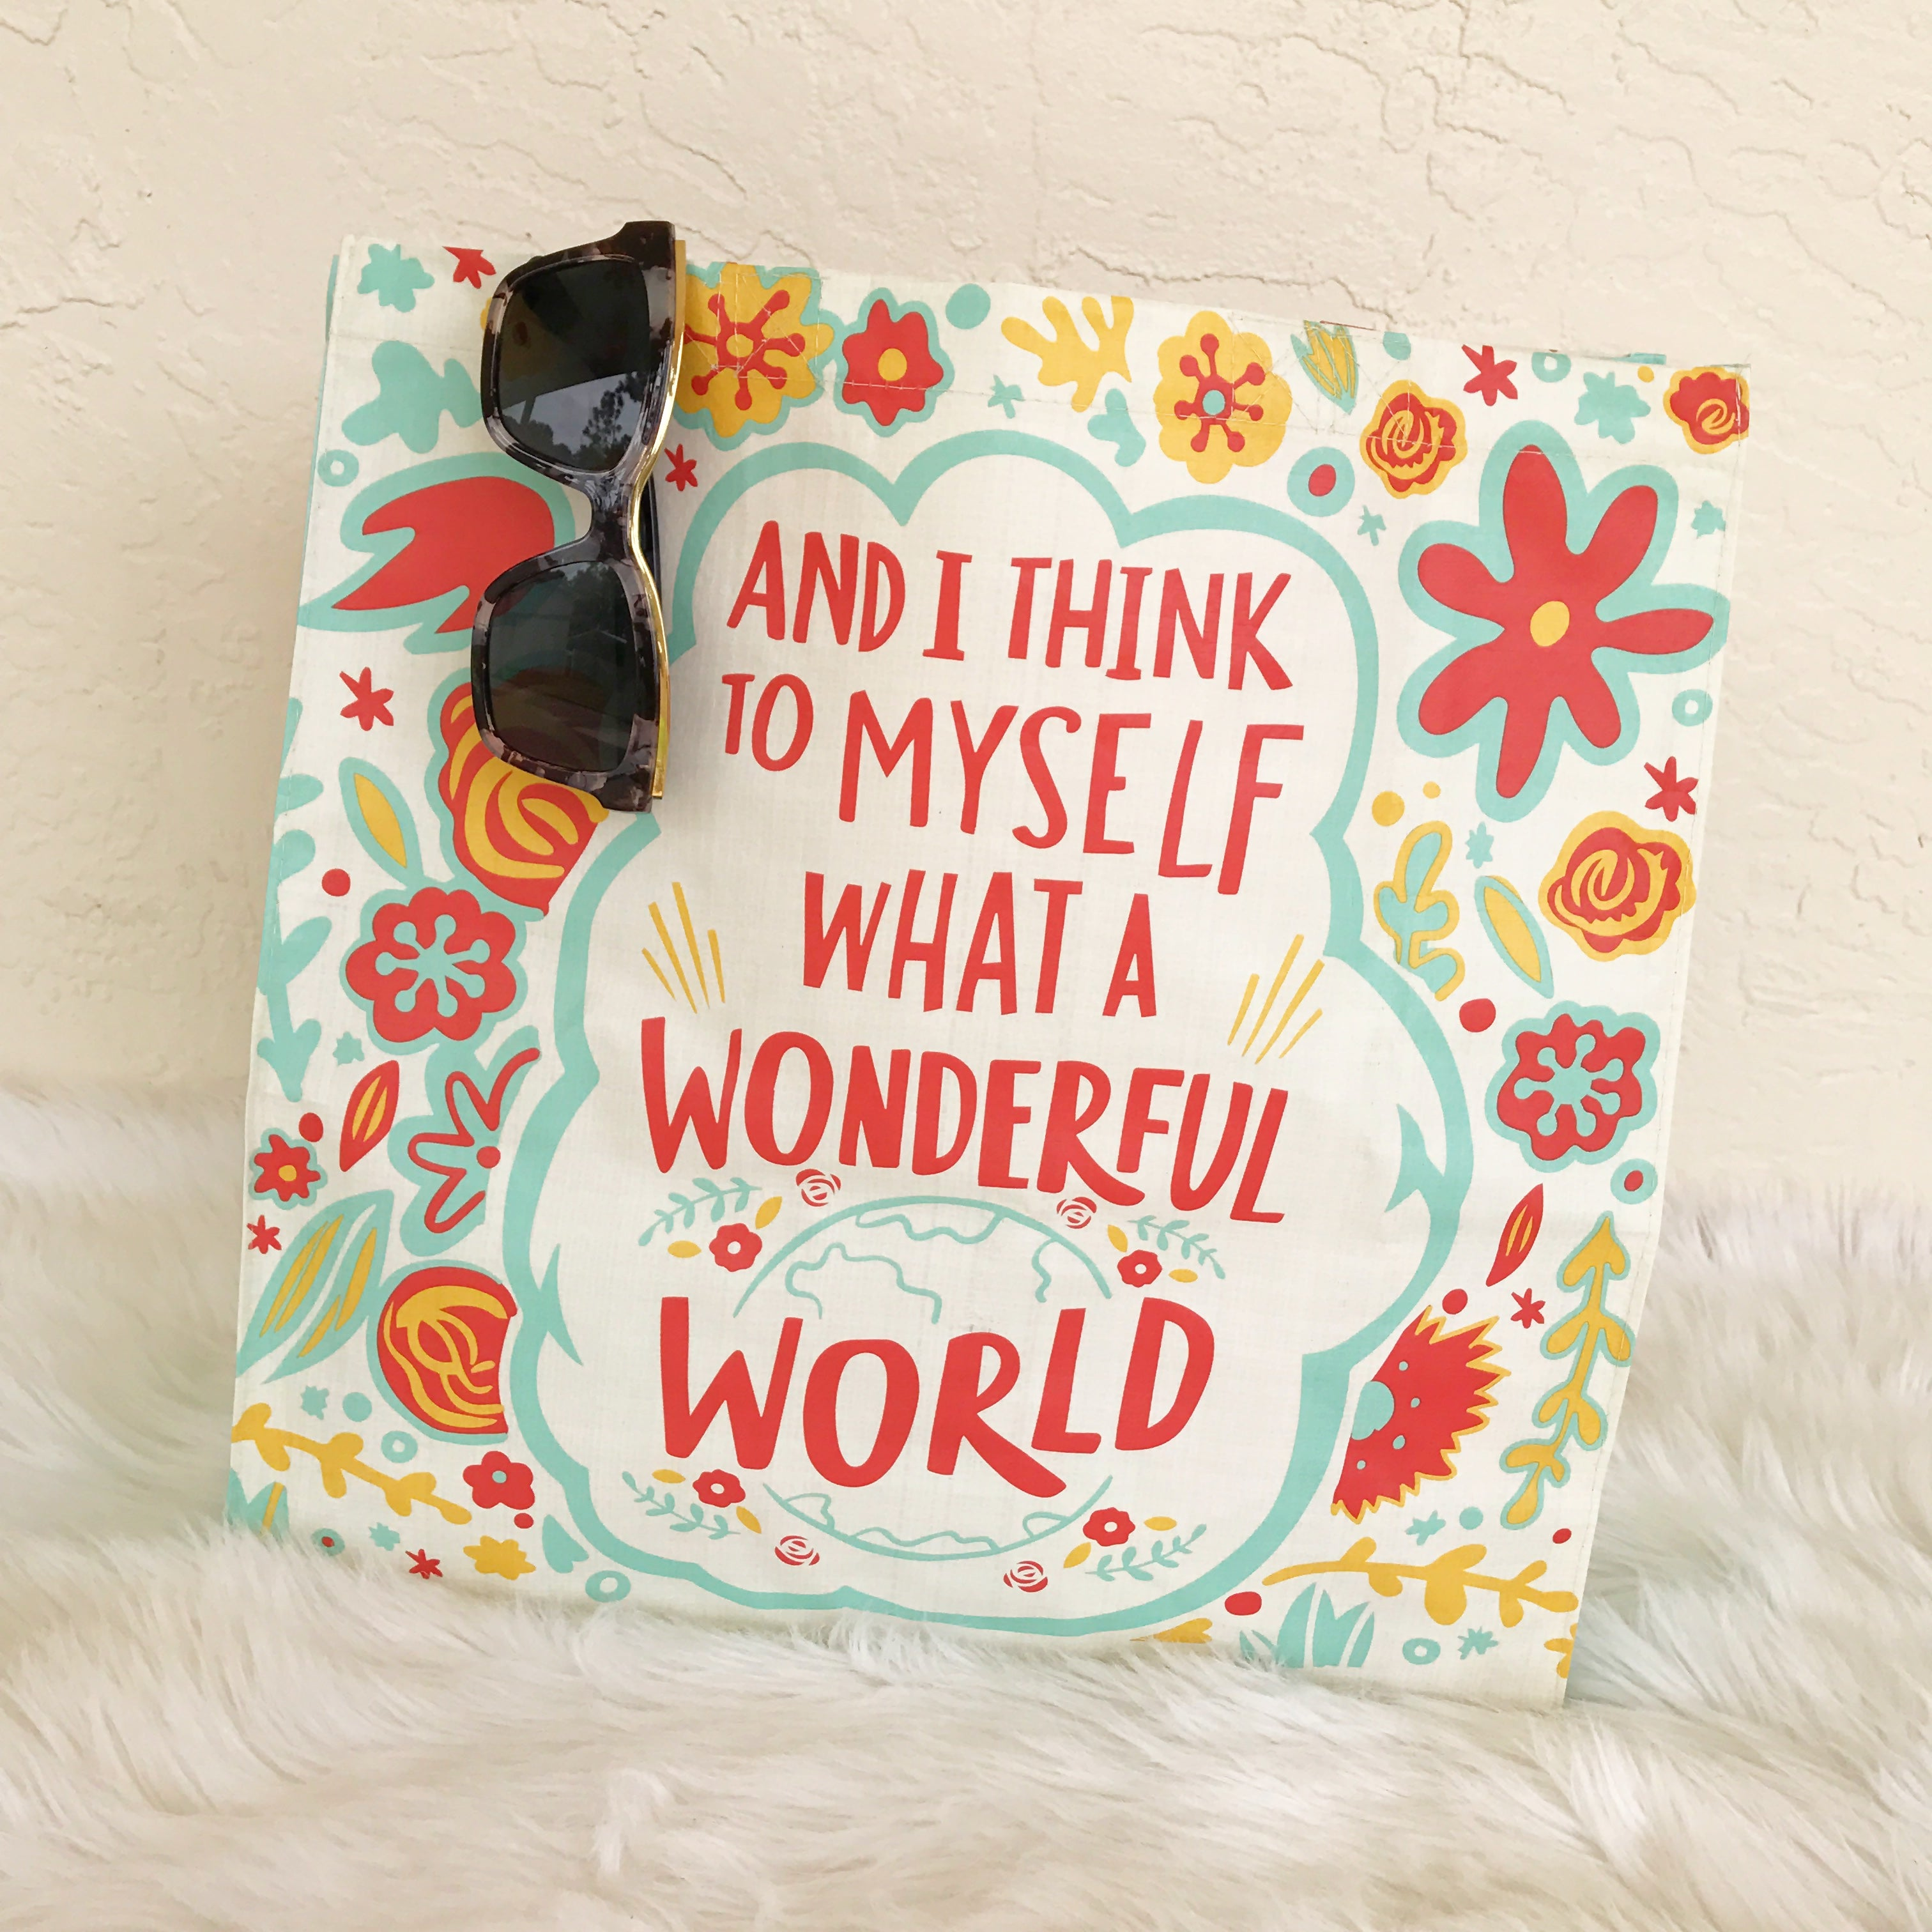 Wonderful world market tote by pbk prep obsessed wonderful world market tote by pbk m4hsunfo